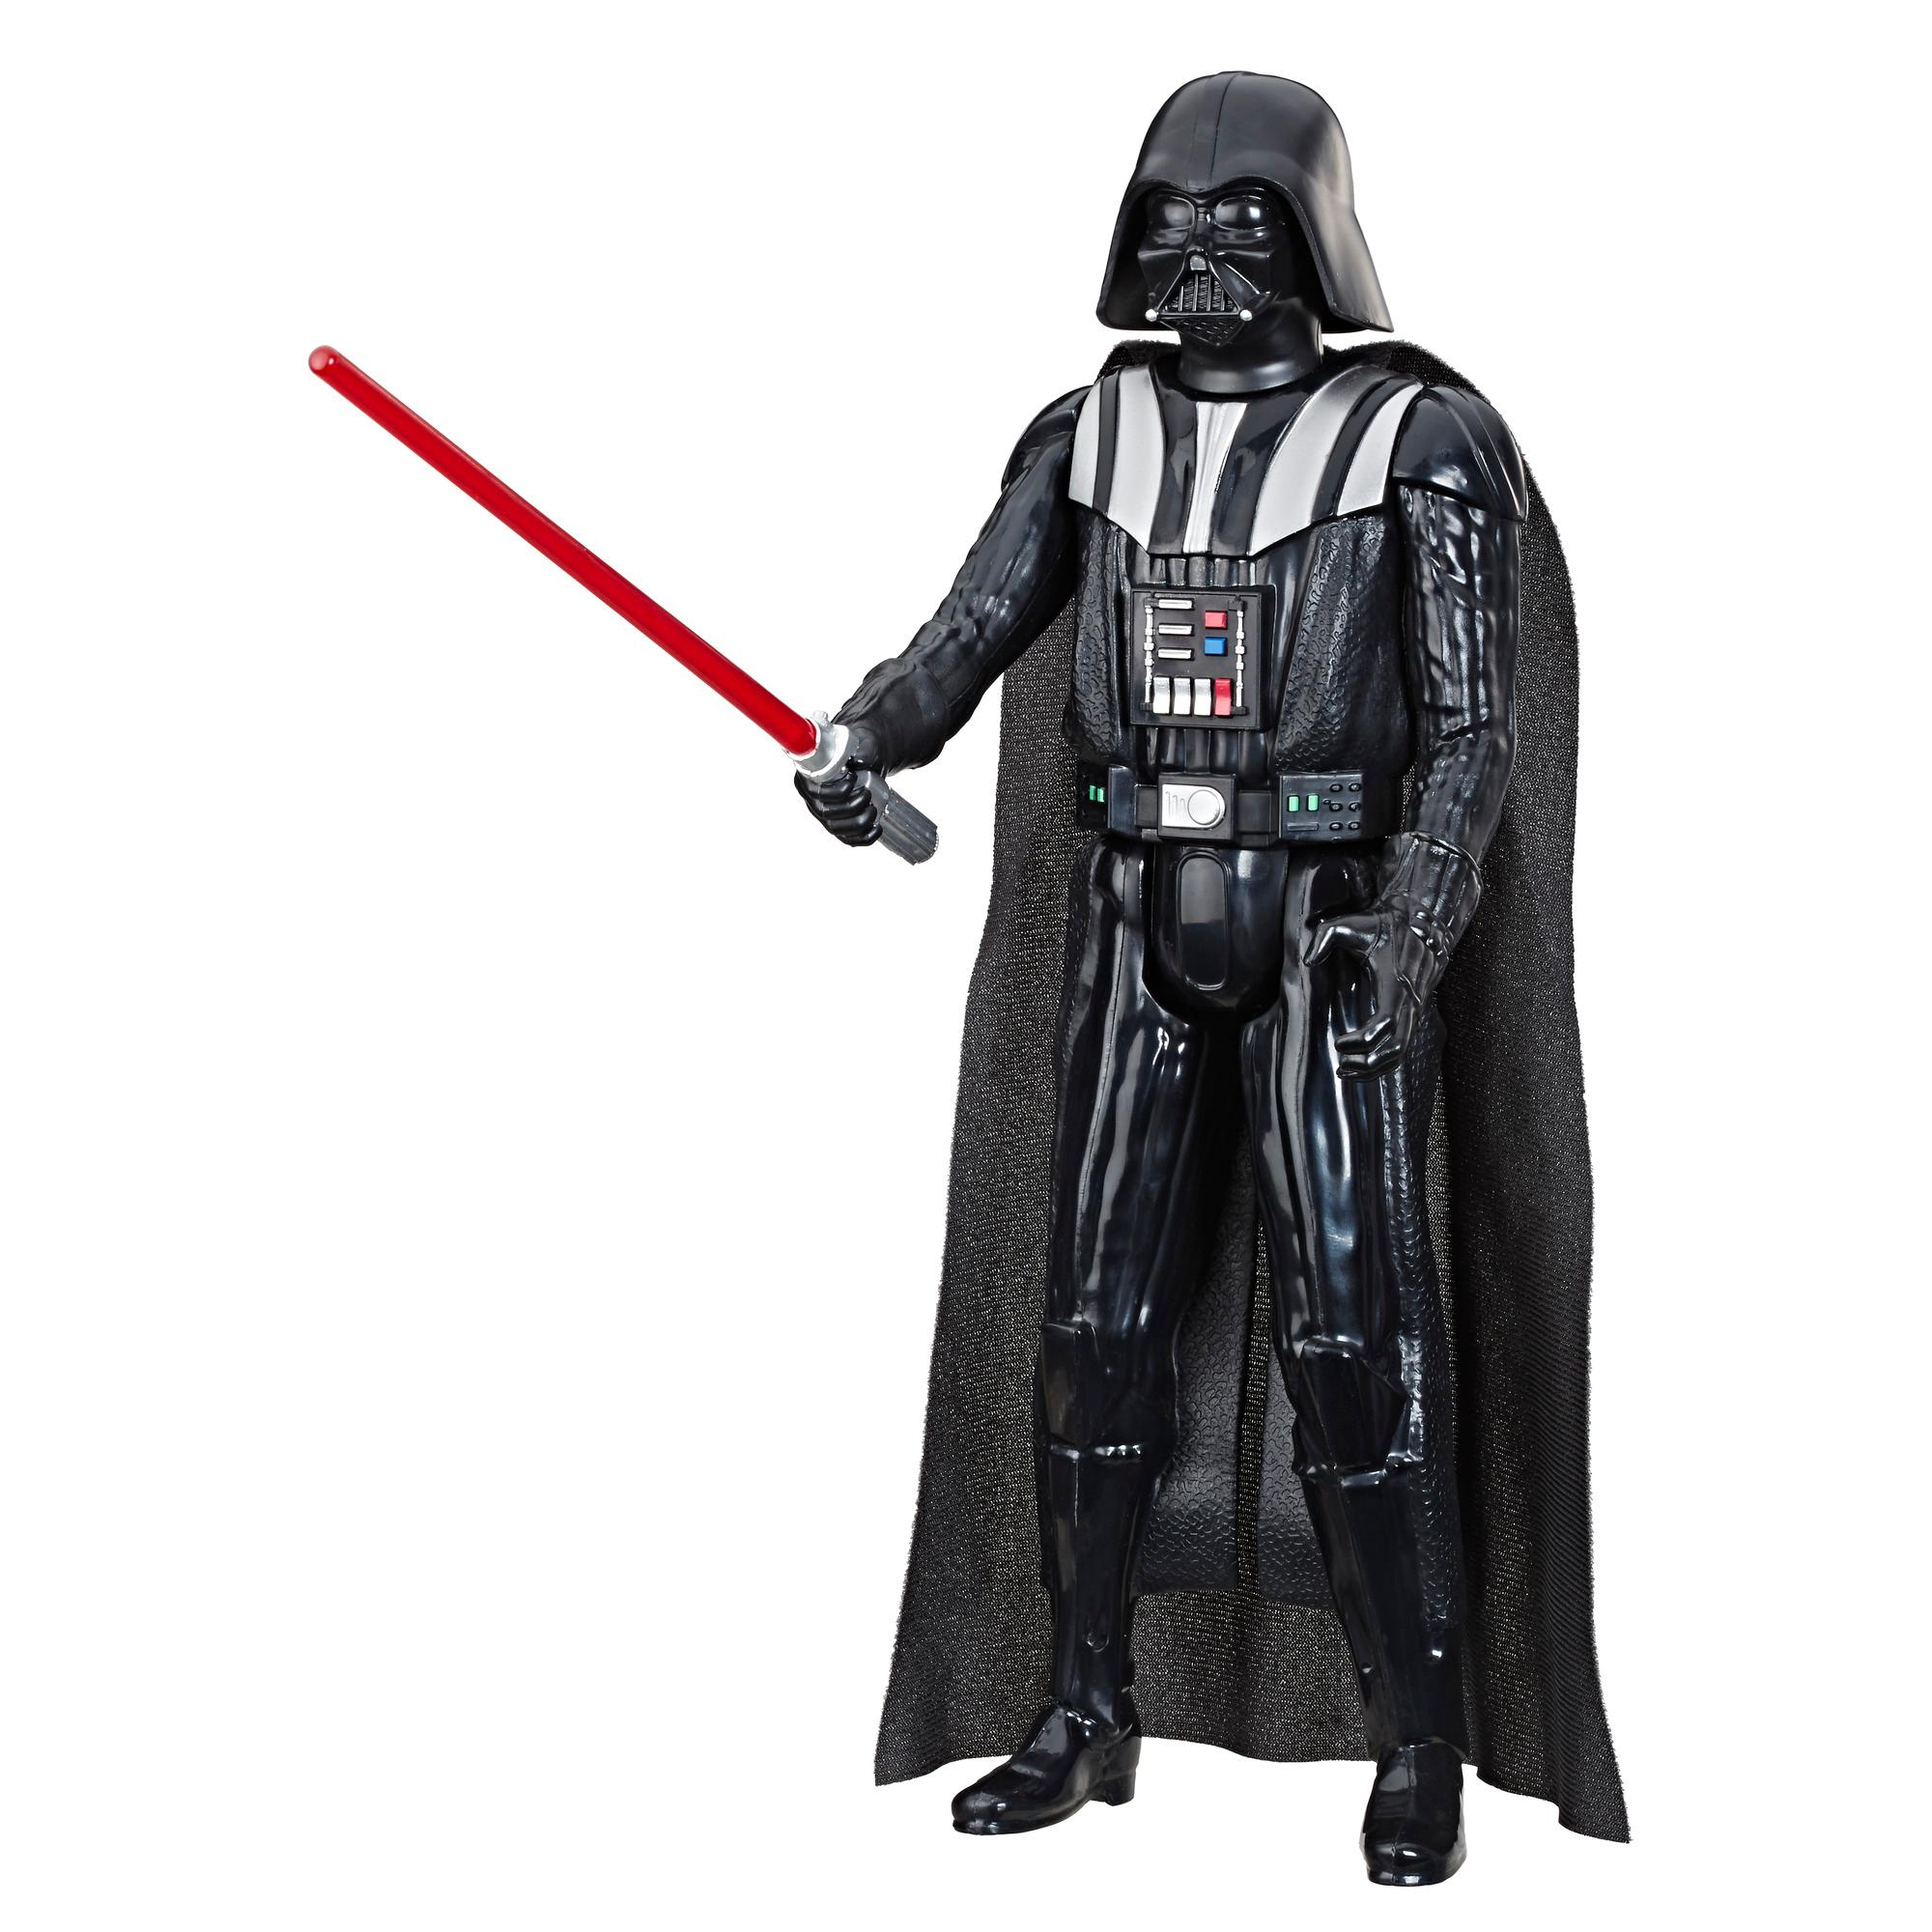 Star Wars Hero Series Darth Vader Toy 12-inch Scale Action Figure with Lightsaber Accessory, Toys for Kids Ages 4 and Up